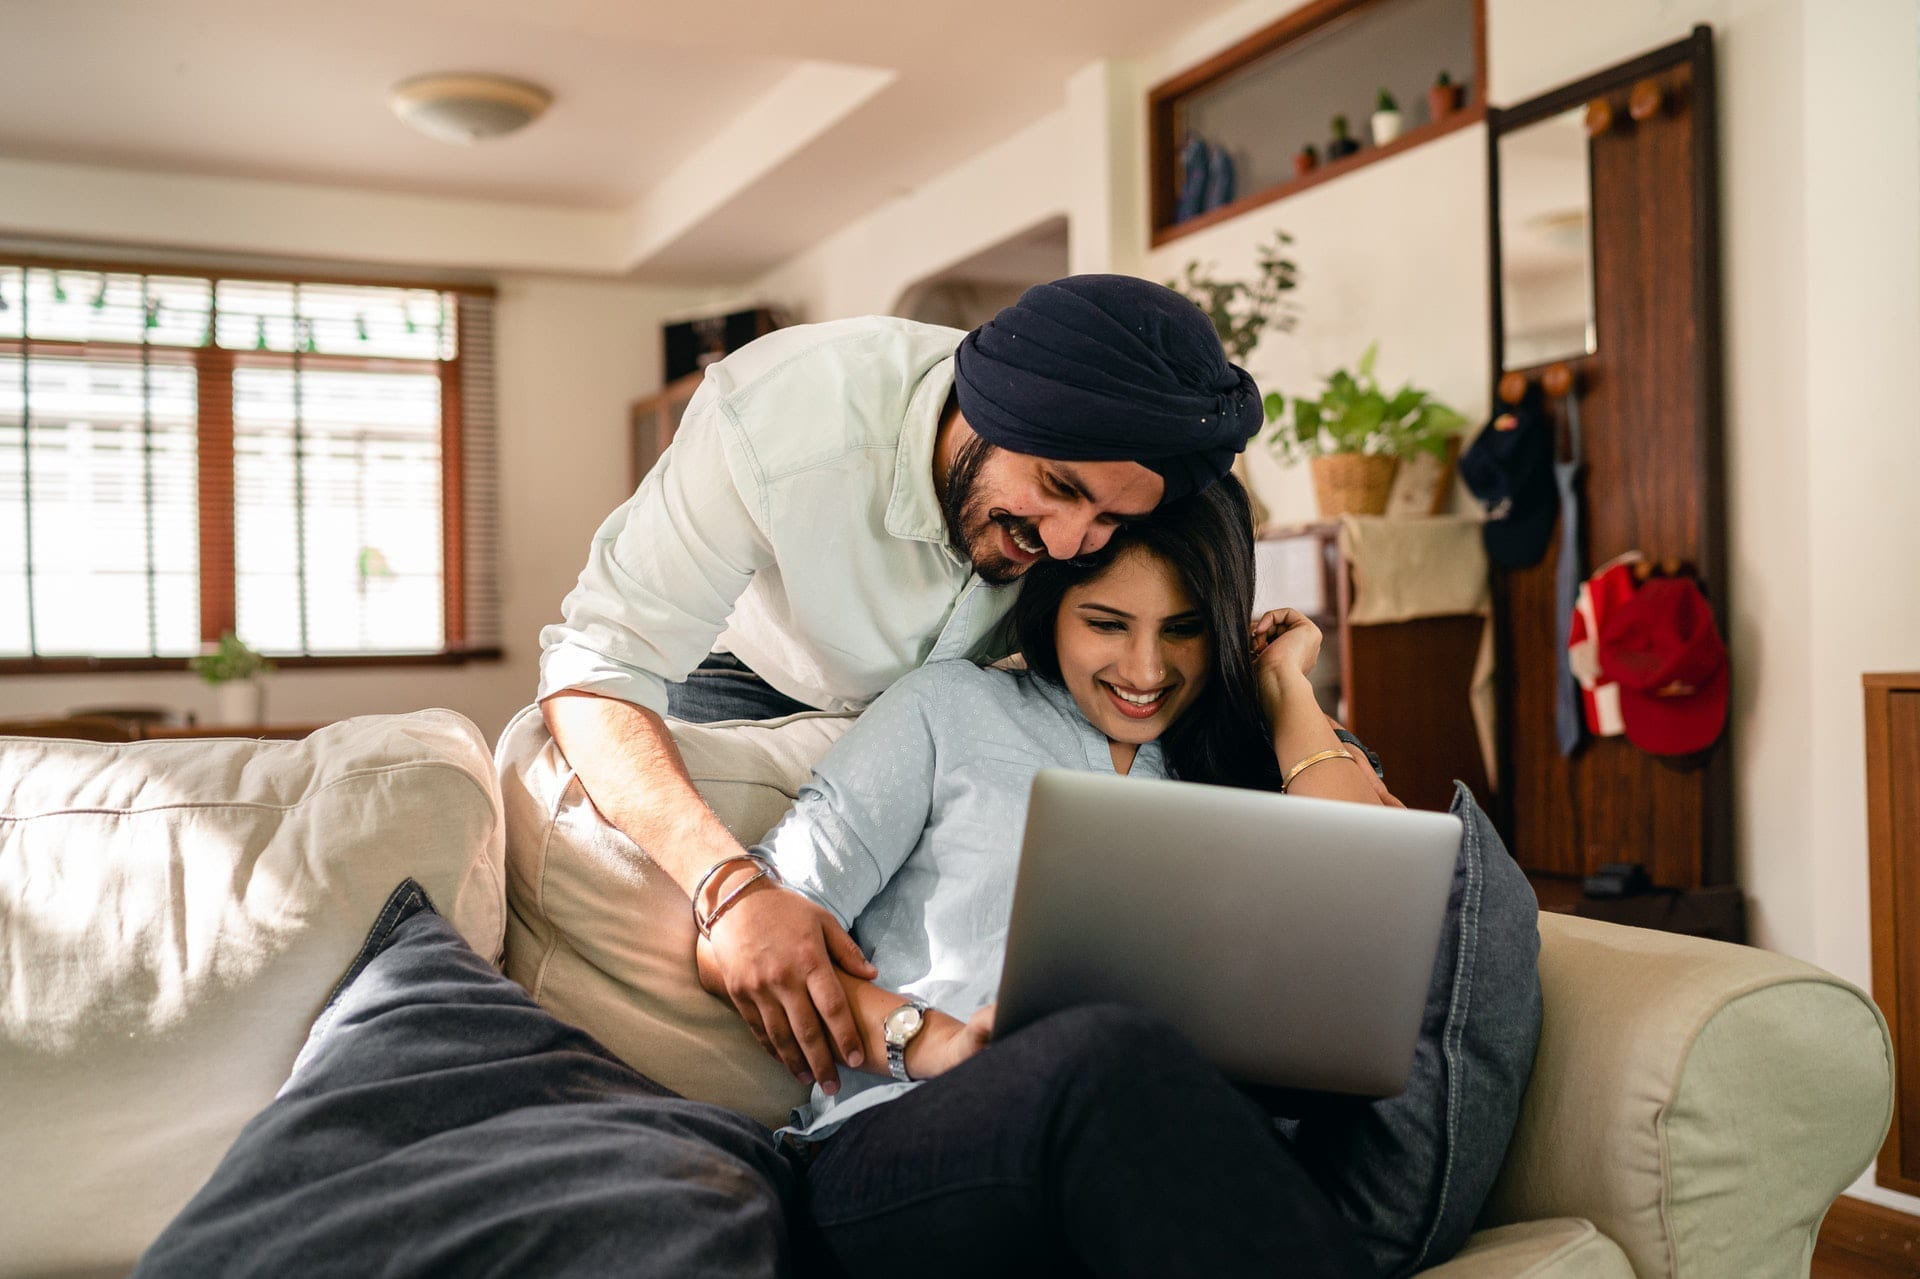 Ethnic couple smiling and looking at laptop in a beautiful home, securing a mortgage post covid-19